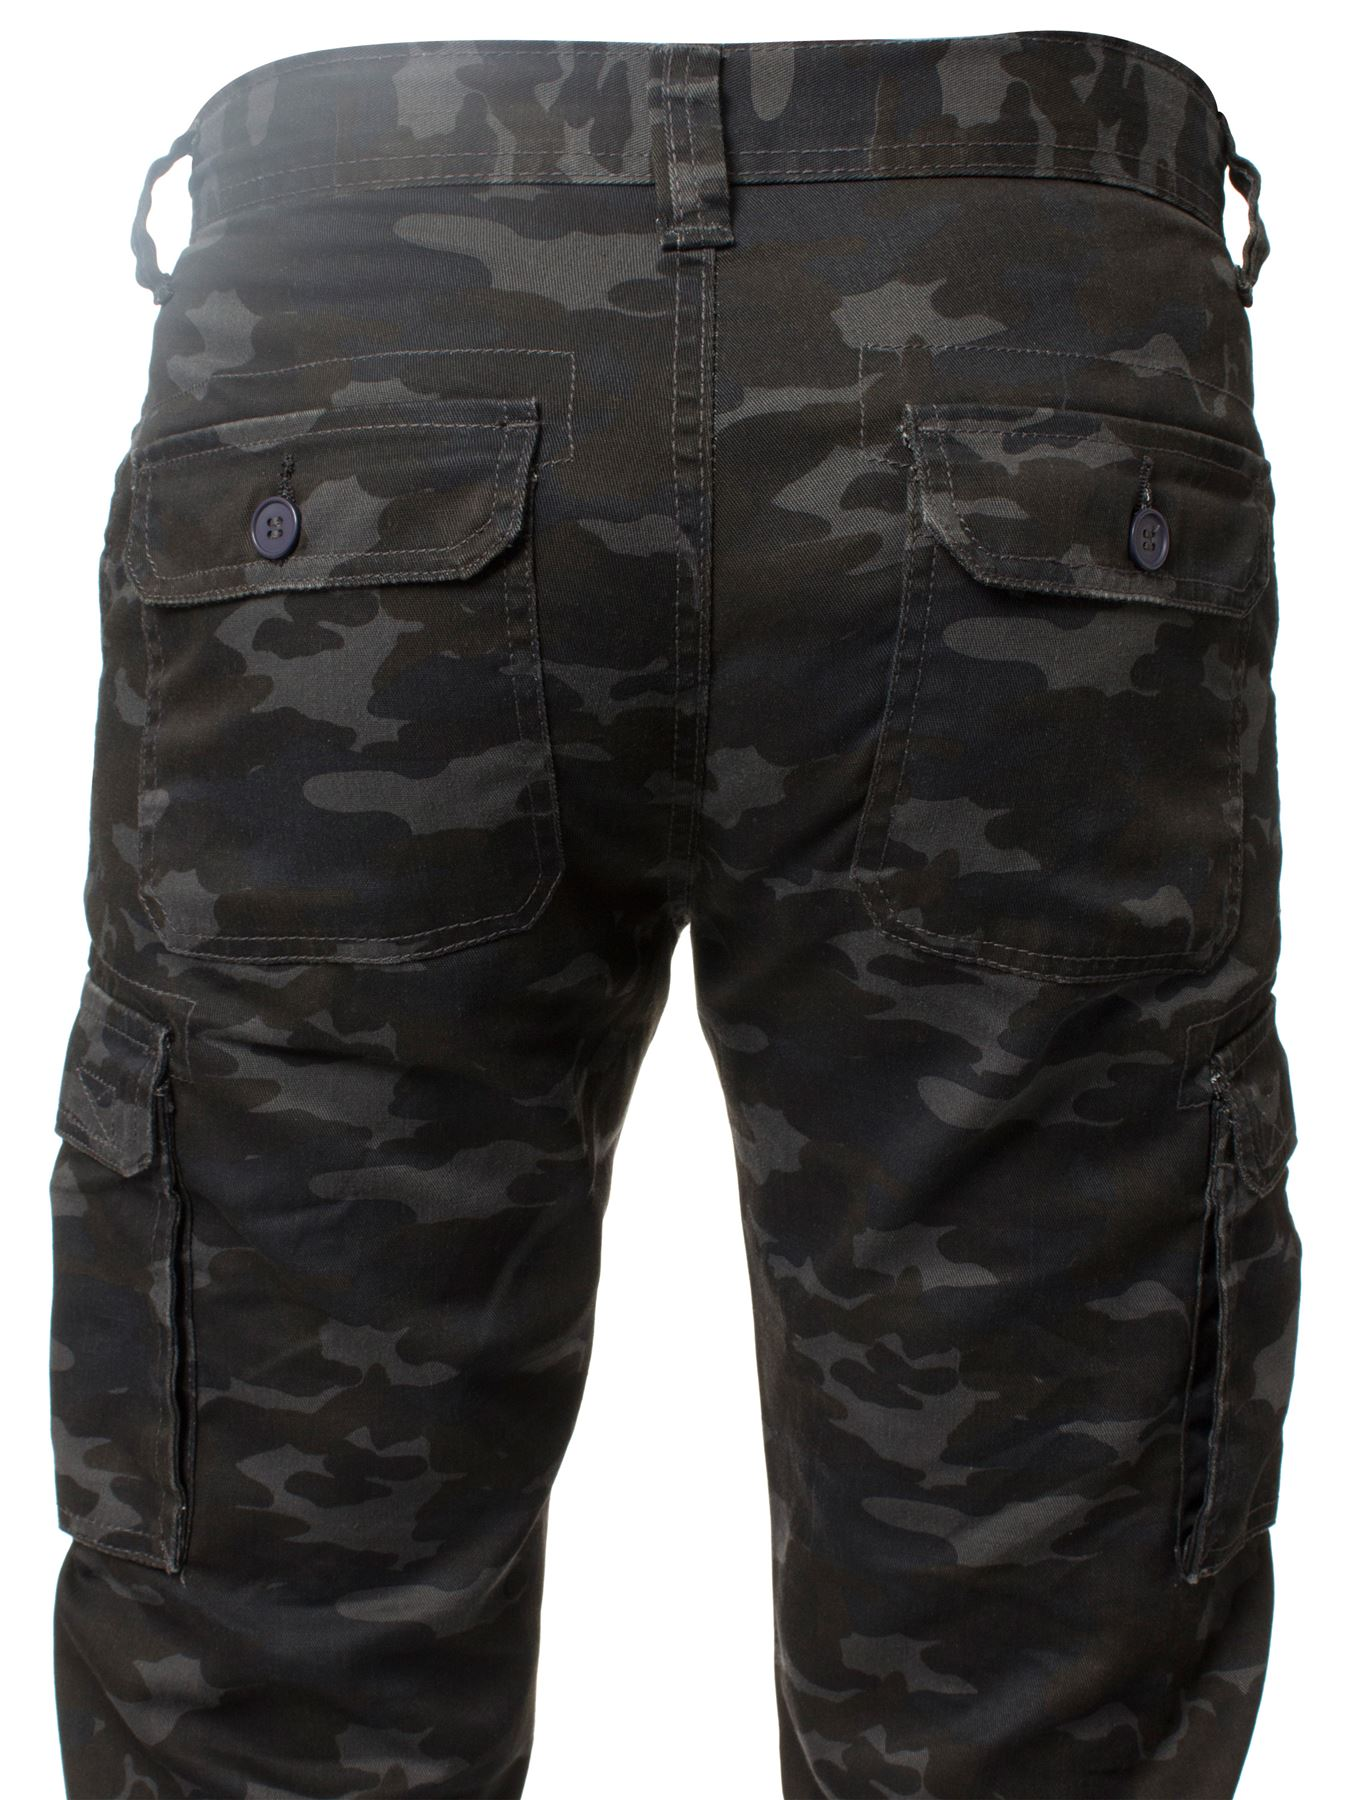 Kruze-Mens-Military-Combat-Trousers-Camouflage-Cargo-Camo-Army-Casual-Work-Pants thumbnail 37